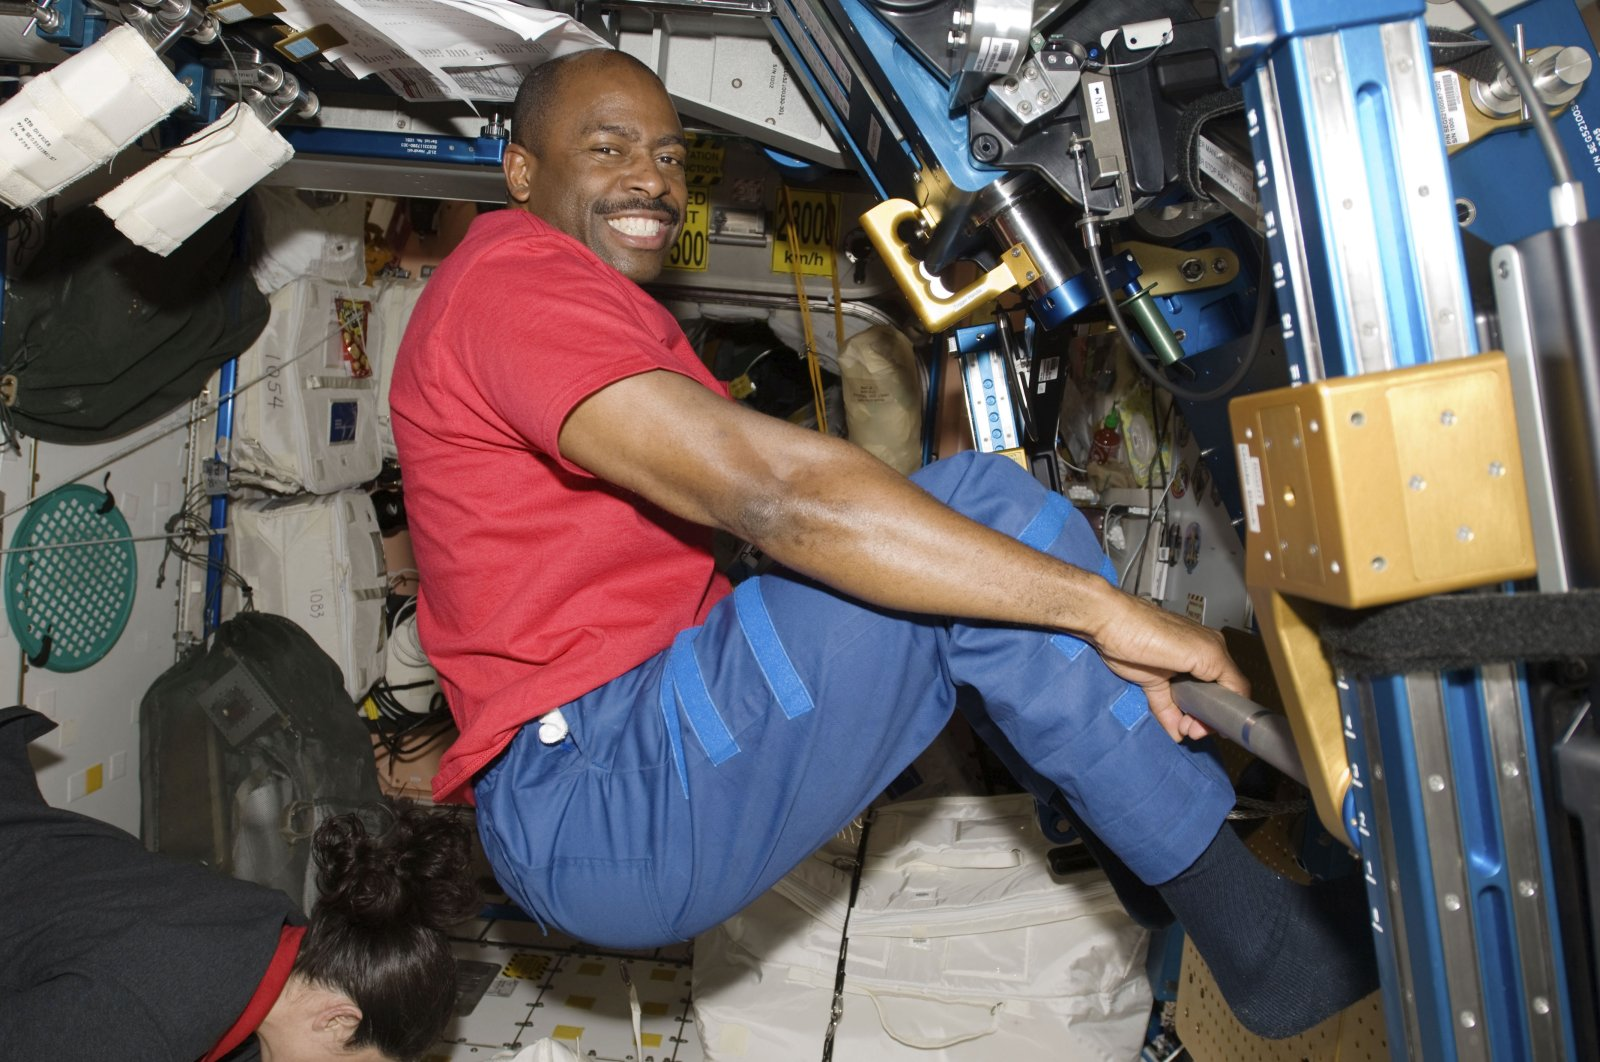 Astronaut Leland Melvin, STS-129 mission specialist, exercises in the Unity module of the International Space Station while the space shuttle Atlantis is docked with the station, Nov. 22, 2009. (NASA via AP)